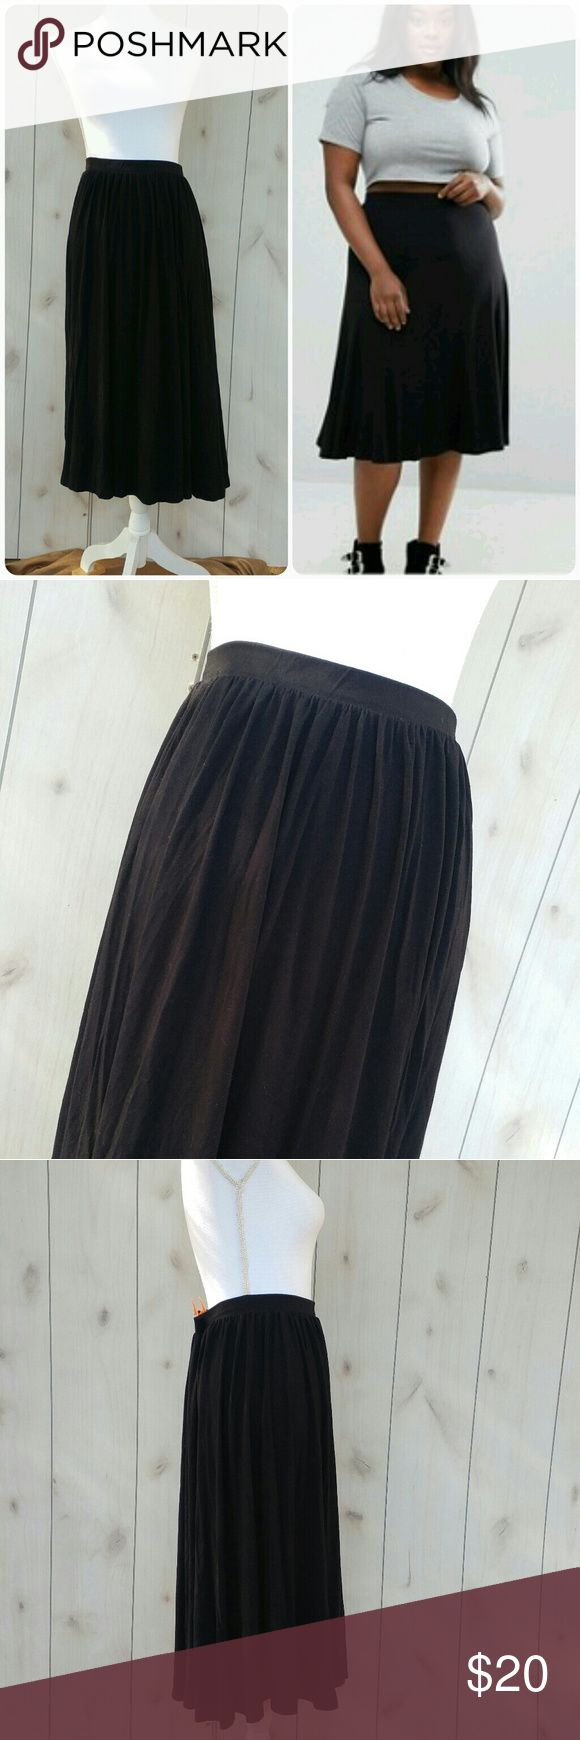 "Asos Curve midi skirt Excellent pre owned condition midi skirt by Asos Curve Size 16 All black No visible wear Lightly pleated  Missing fabric content tag but fabric feels soft and does have stretch to it Waist has elastic band   Waist 16"" Length 31"" ASOS Curve Skirts Midi"